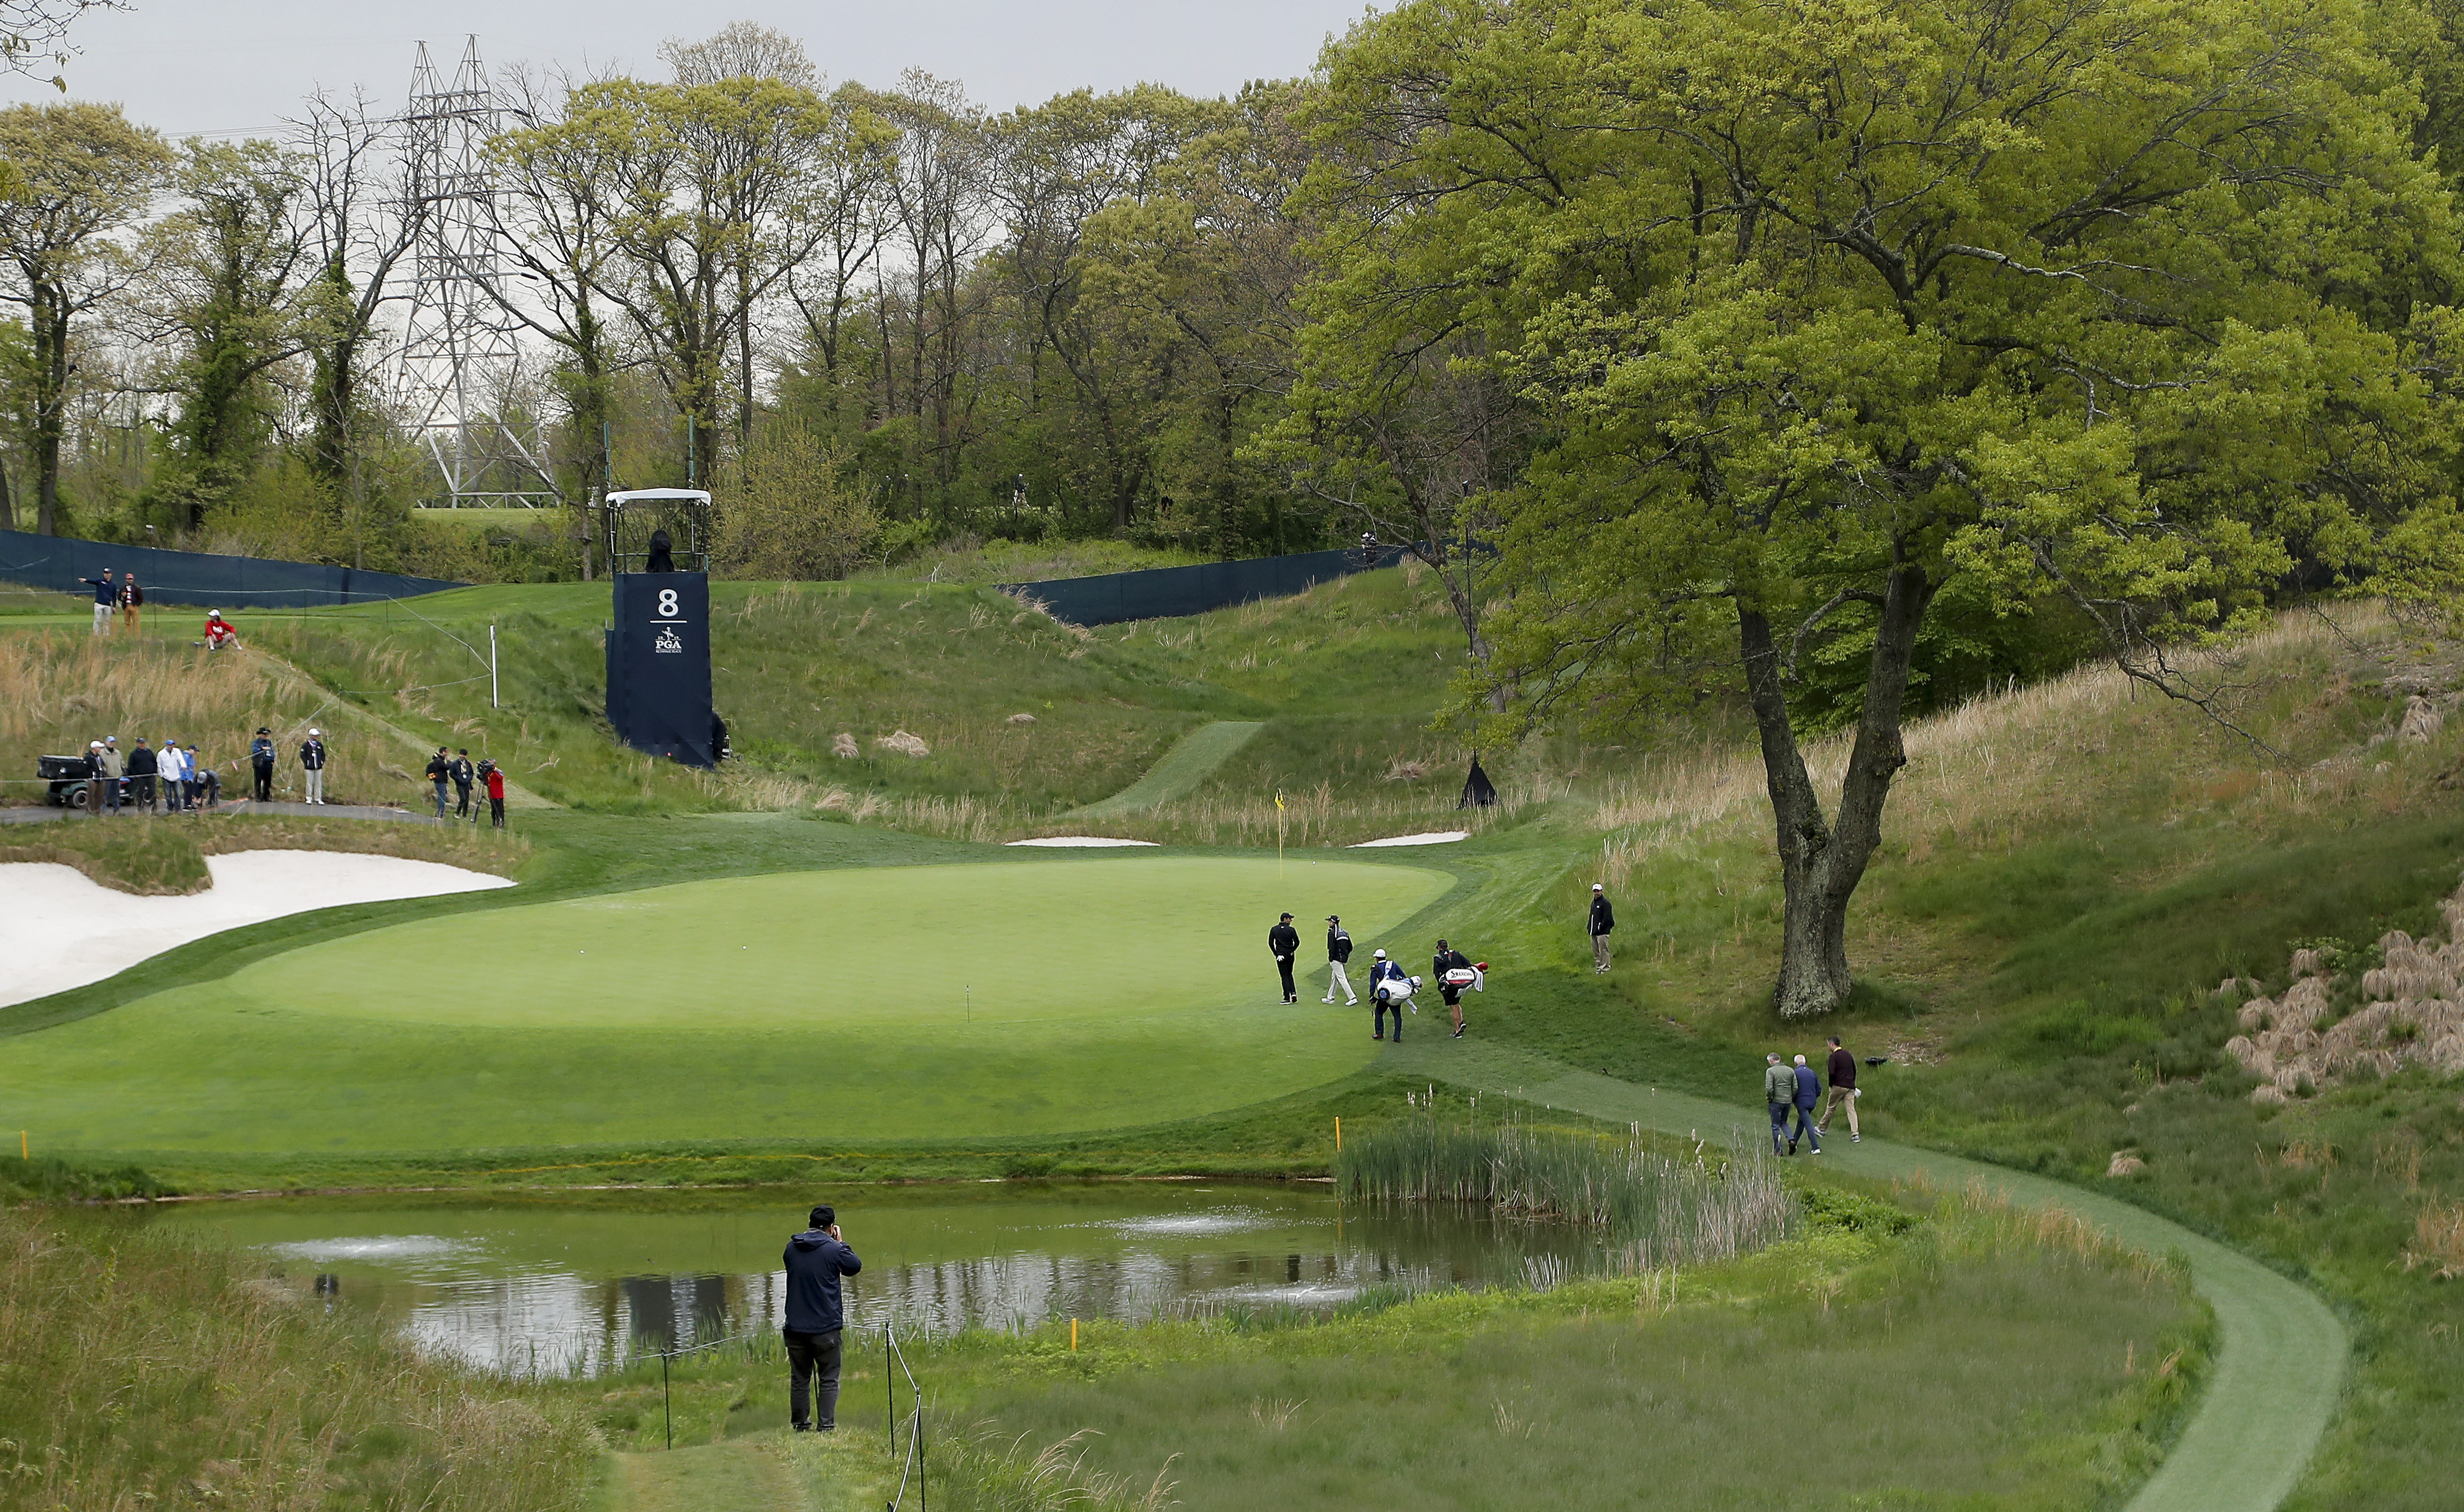 Pga Championship 2019 Weather Forecast Will Rain Return For 1st And 2nd Rounds At Bethpage Black Nj Com